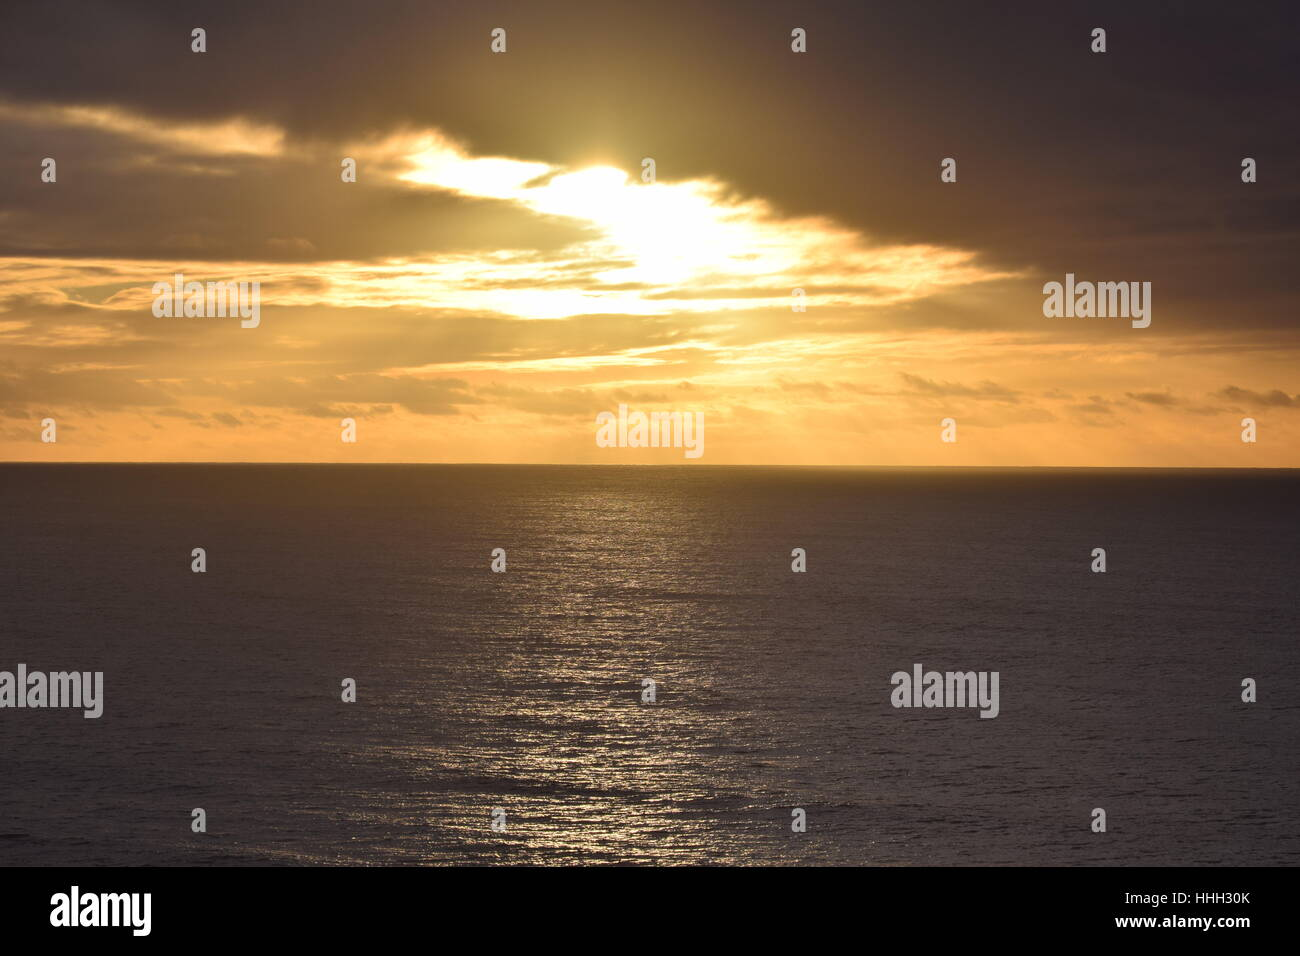 Sunset peeking through the clouds, shimmering light on the Pacific ocean - Stock Image